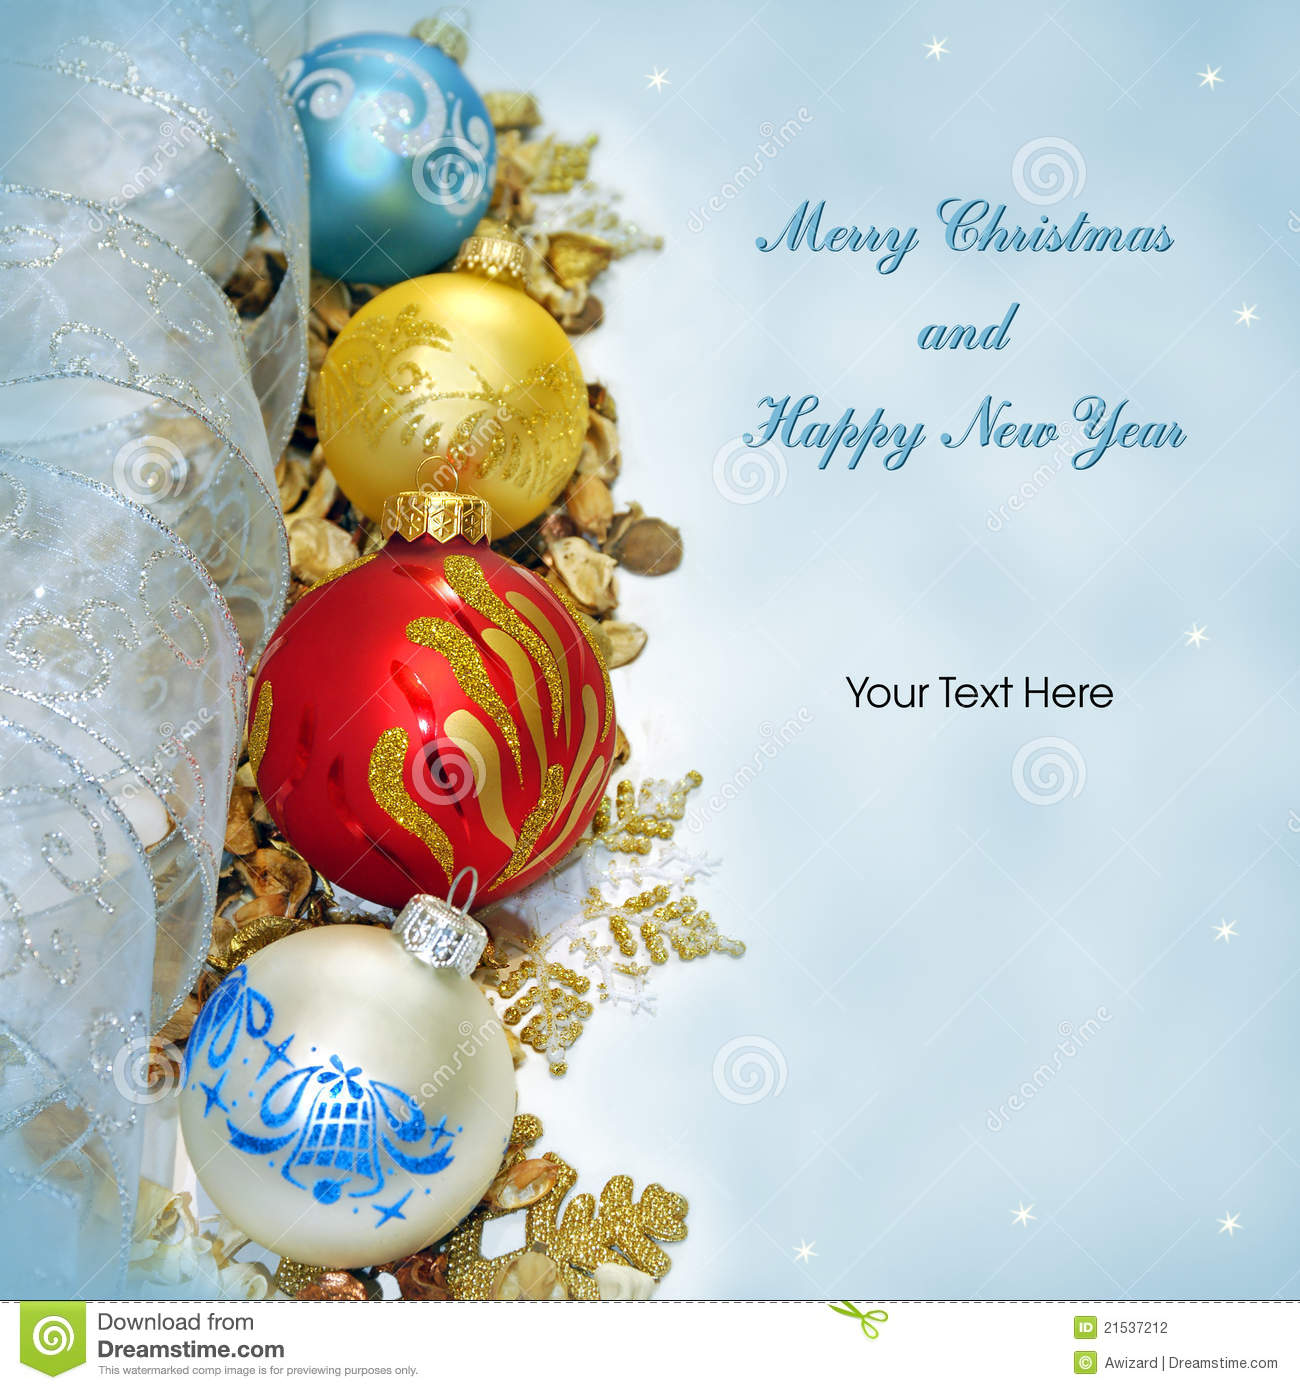 Merry christmas and happy new year greeting card stock photo image merry christmas and happy new year greeting card m4hsunfo